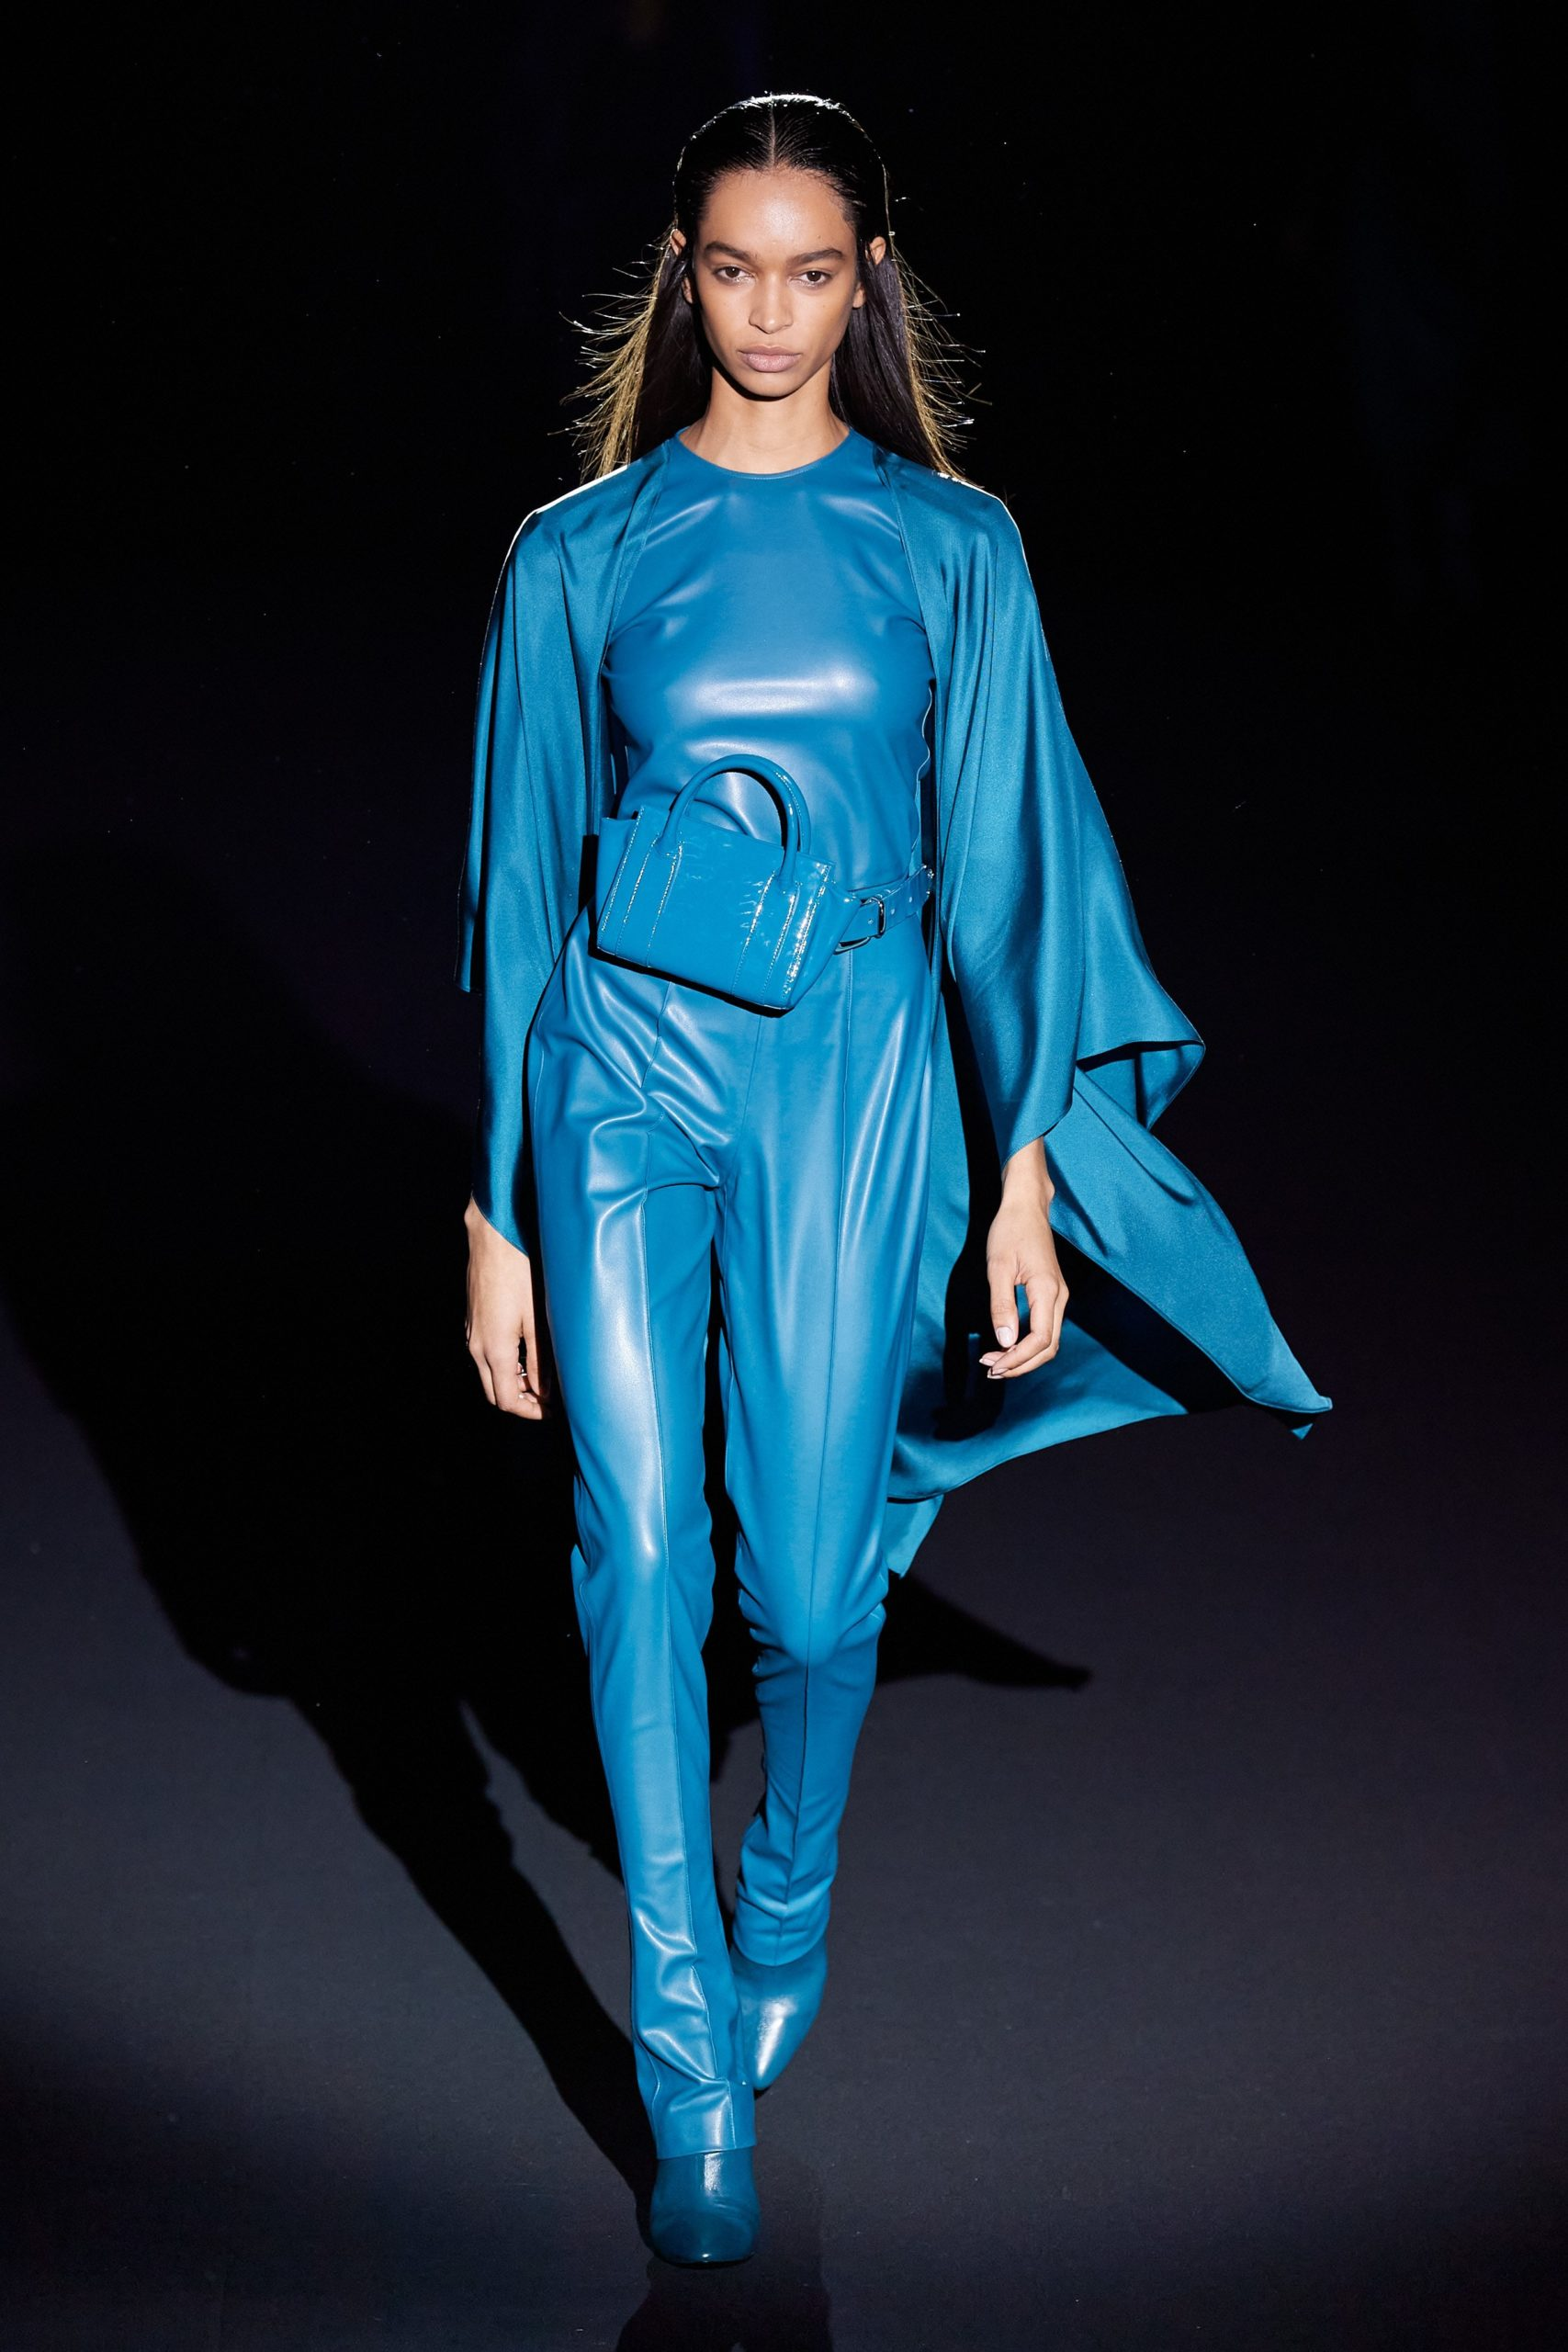 Sally Lapointe Fall 2020 trends runway coverage Ready To Wear Vogue Isabel Marant Fall 2020 trends runway coverage Ready To Wear Vogue leather blue monochrome